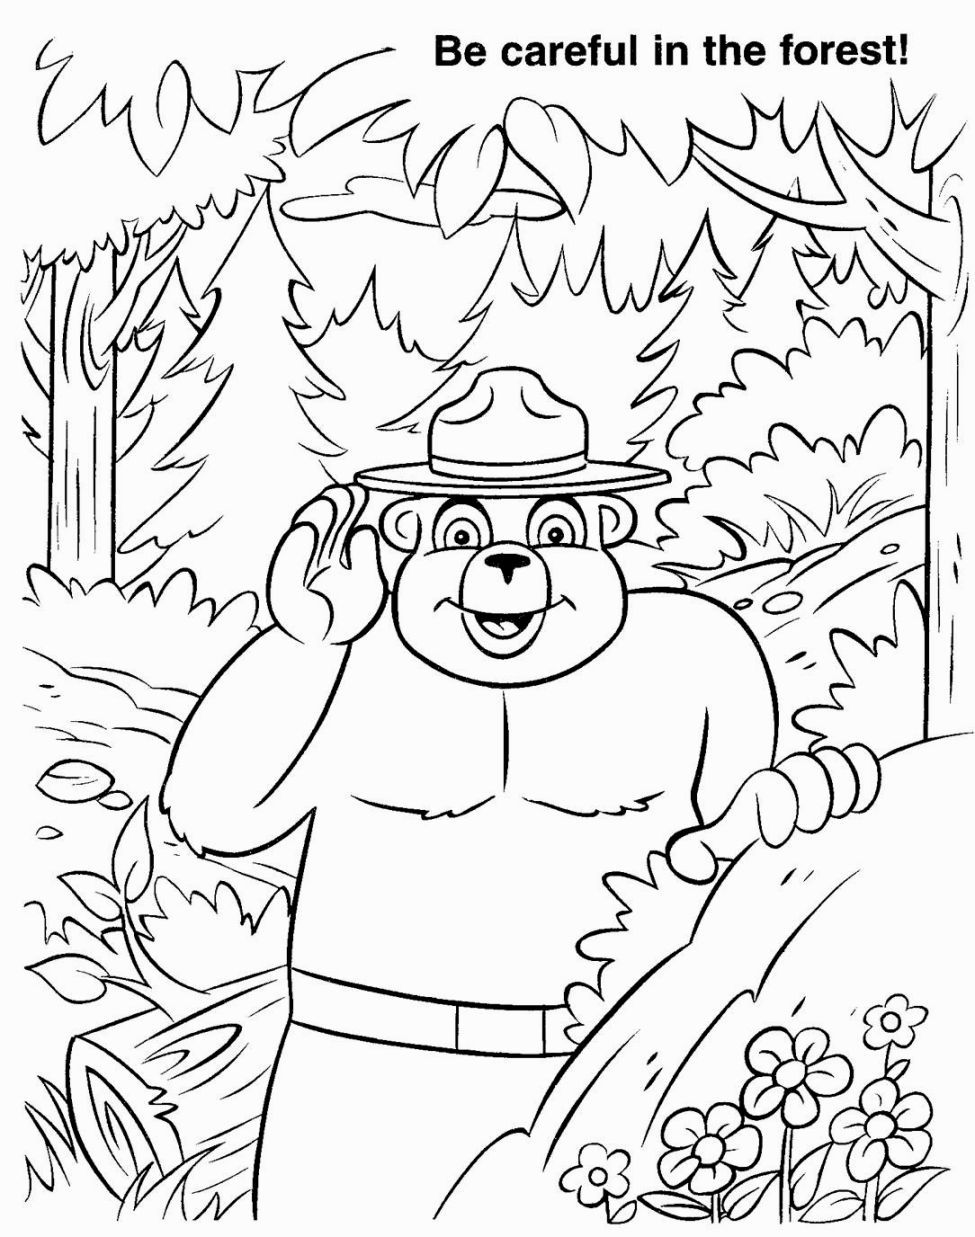 smokey the bear coloring pages # 13